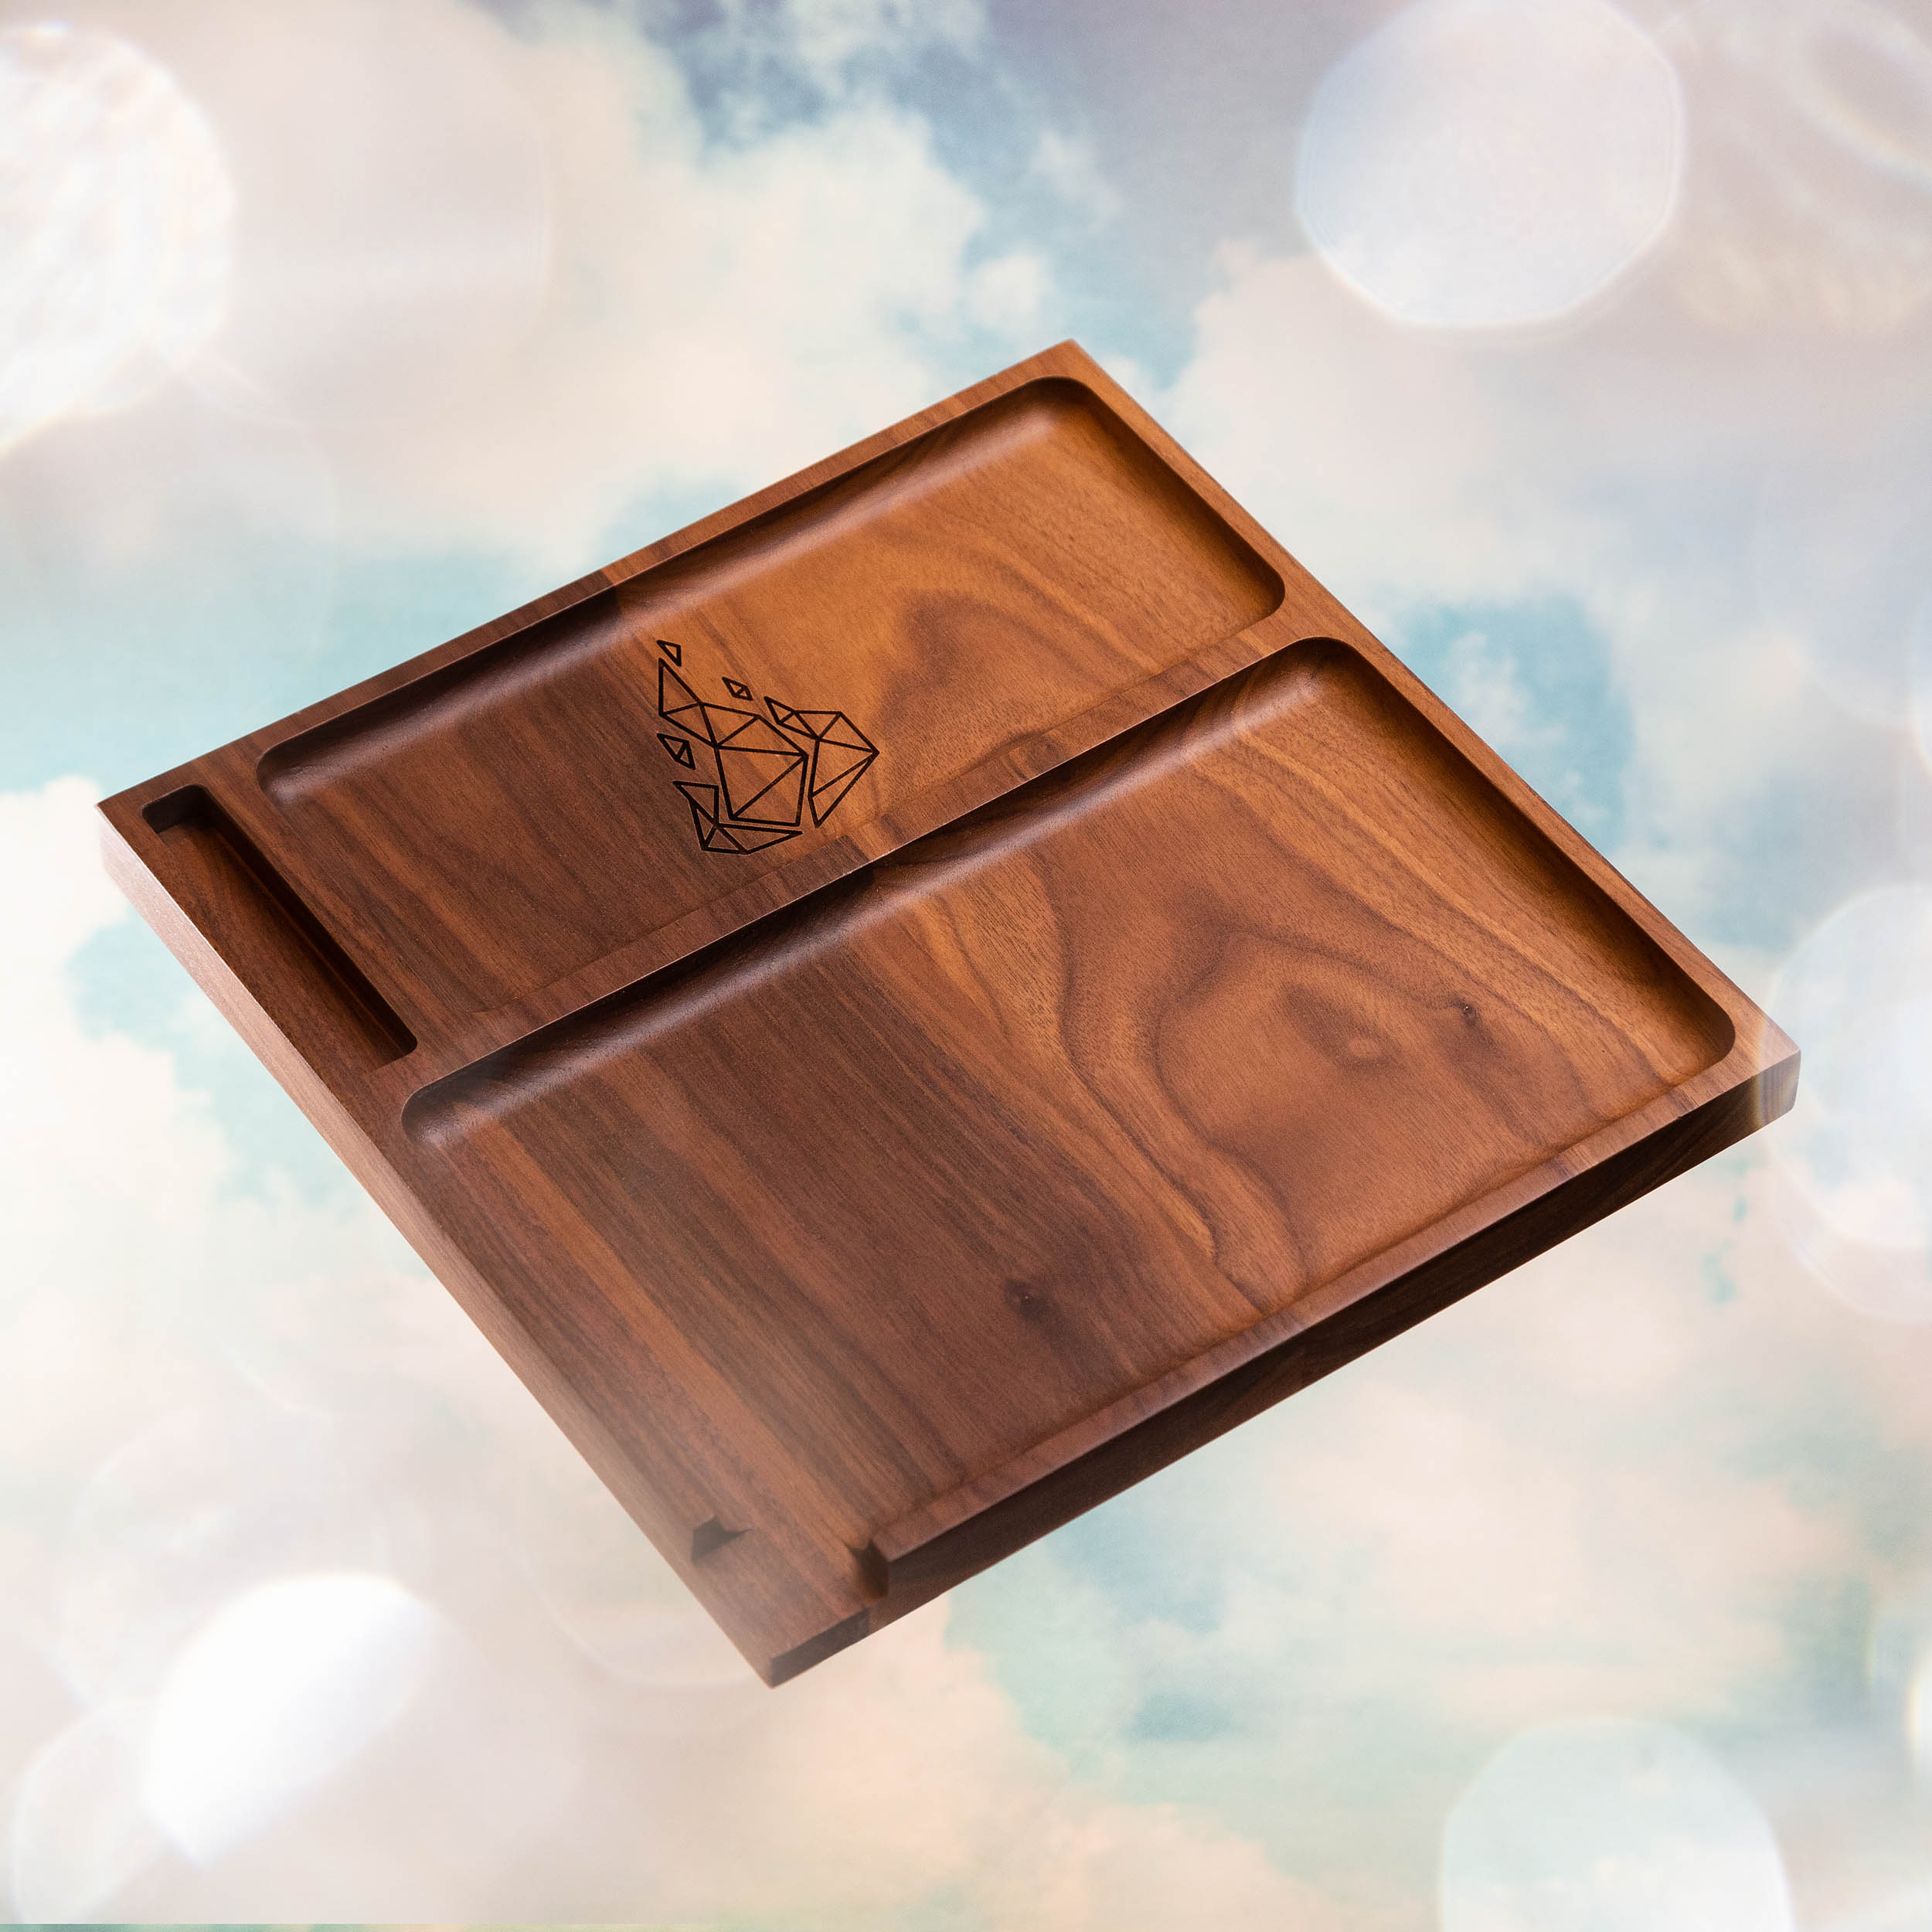 Yaketa Cannabis rolling tray product photography for BRNT